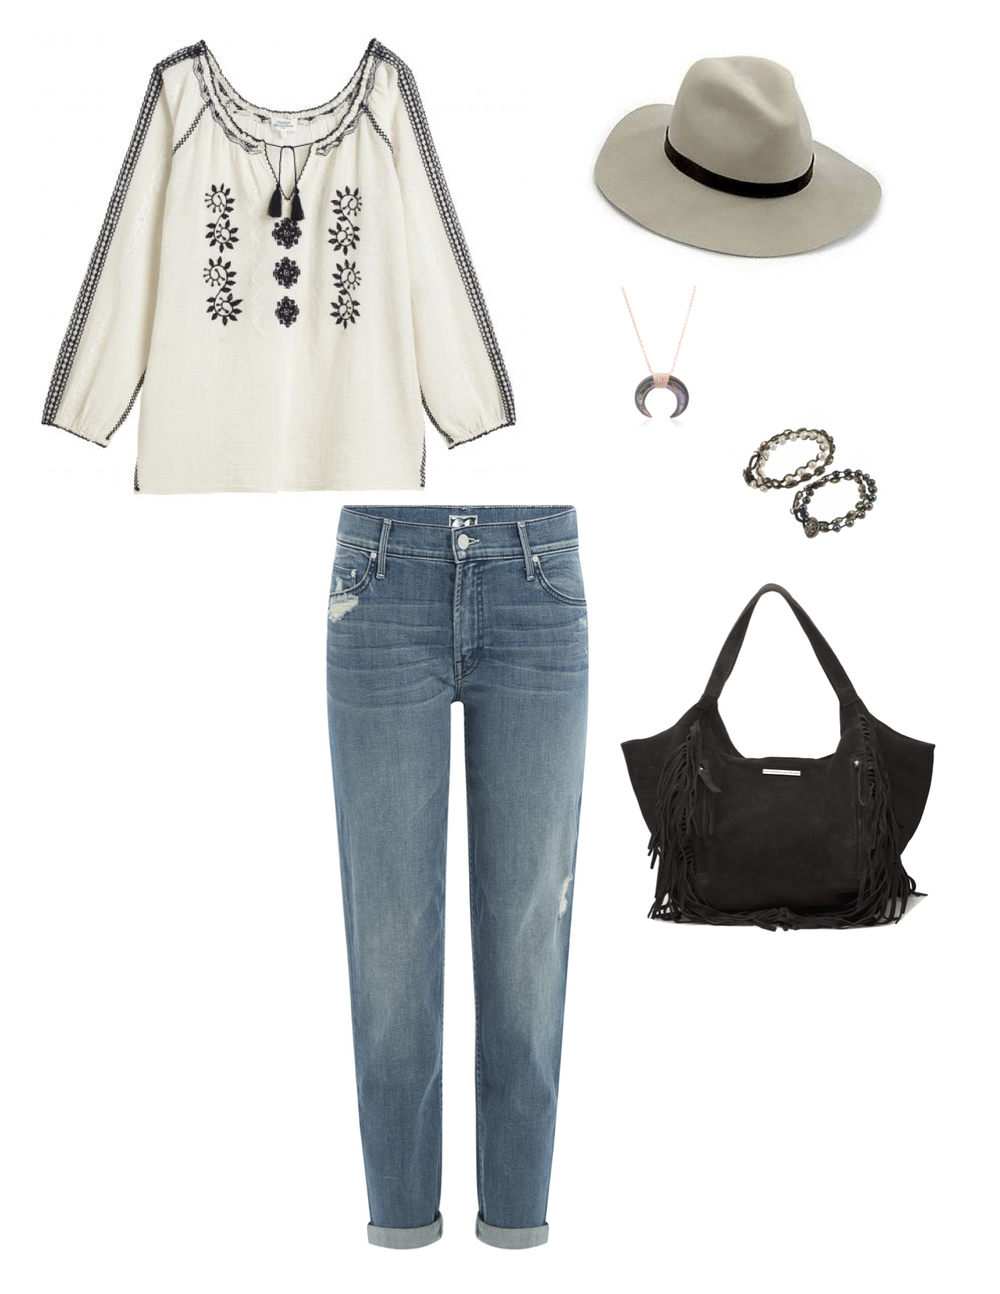 "Hartford ""Horsica"" Top, Mother Denim ""Drop Out"" jean, Rag & Bone wide brim fedora, Jacquie Aiche mini abalone double horn necklace, Love Heals freshwater pearl wrap bracelets & Day Birger et Mikkelsen fringe hobo bag."